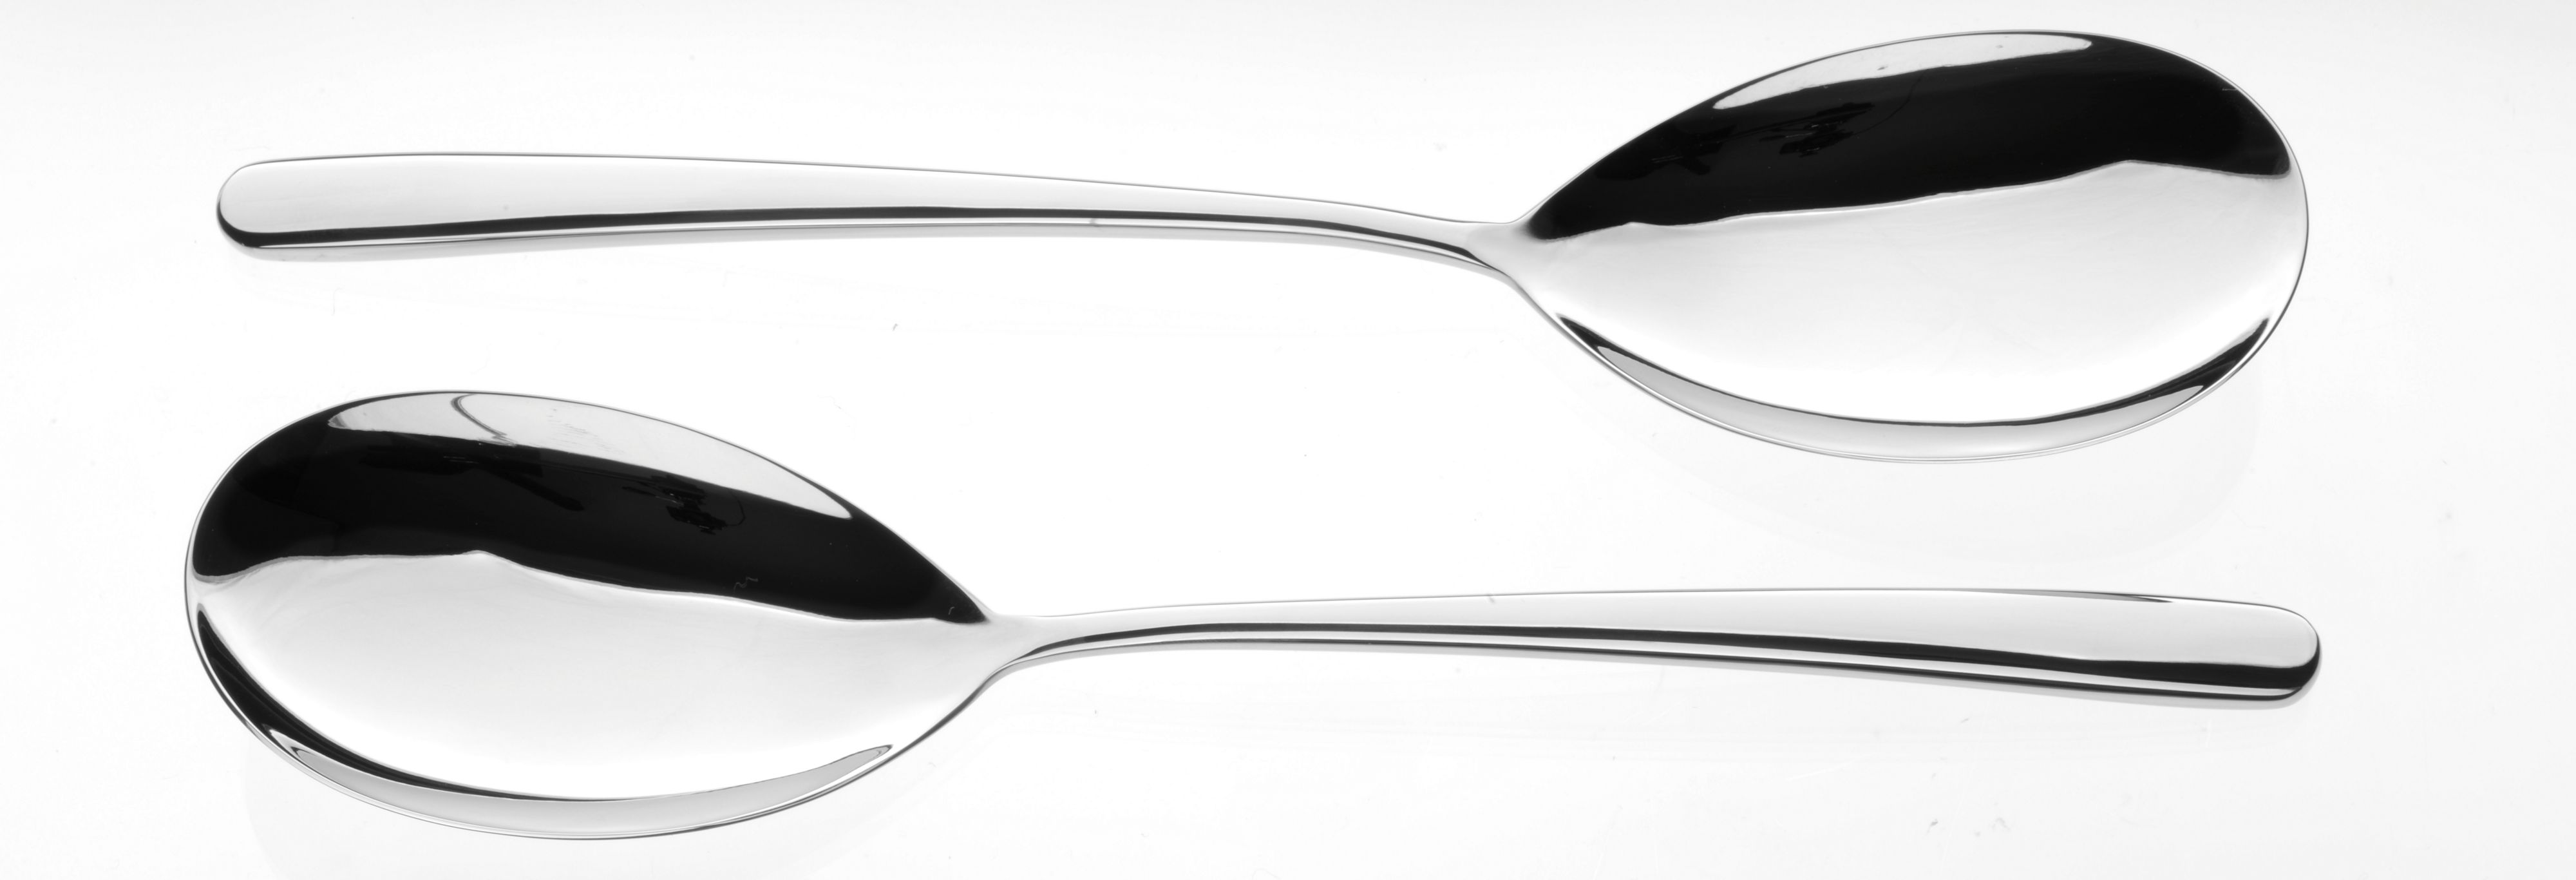 Echo stainless steel pair of large serving spoons